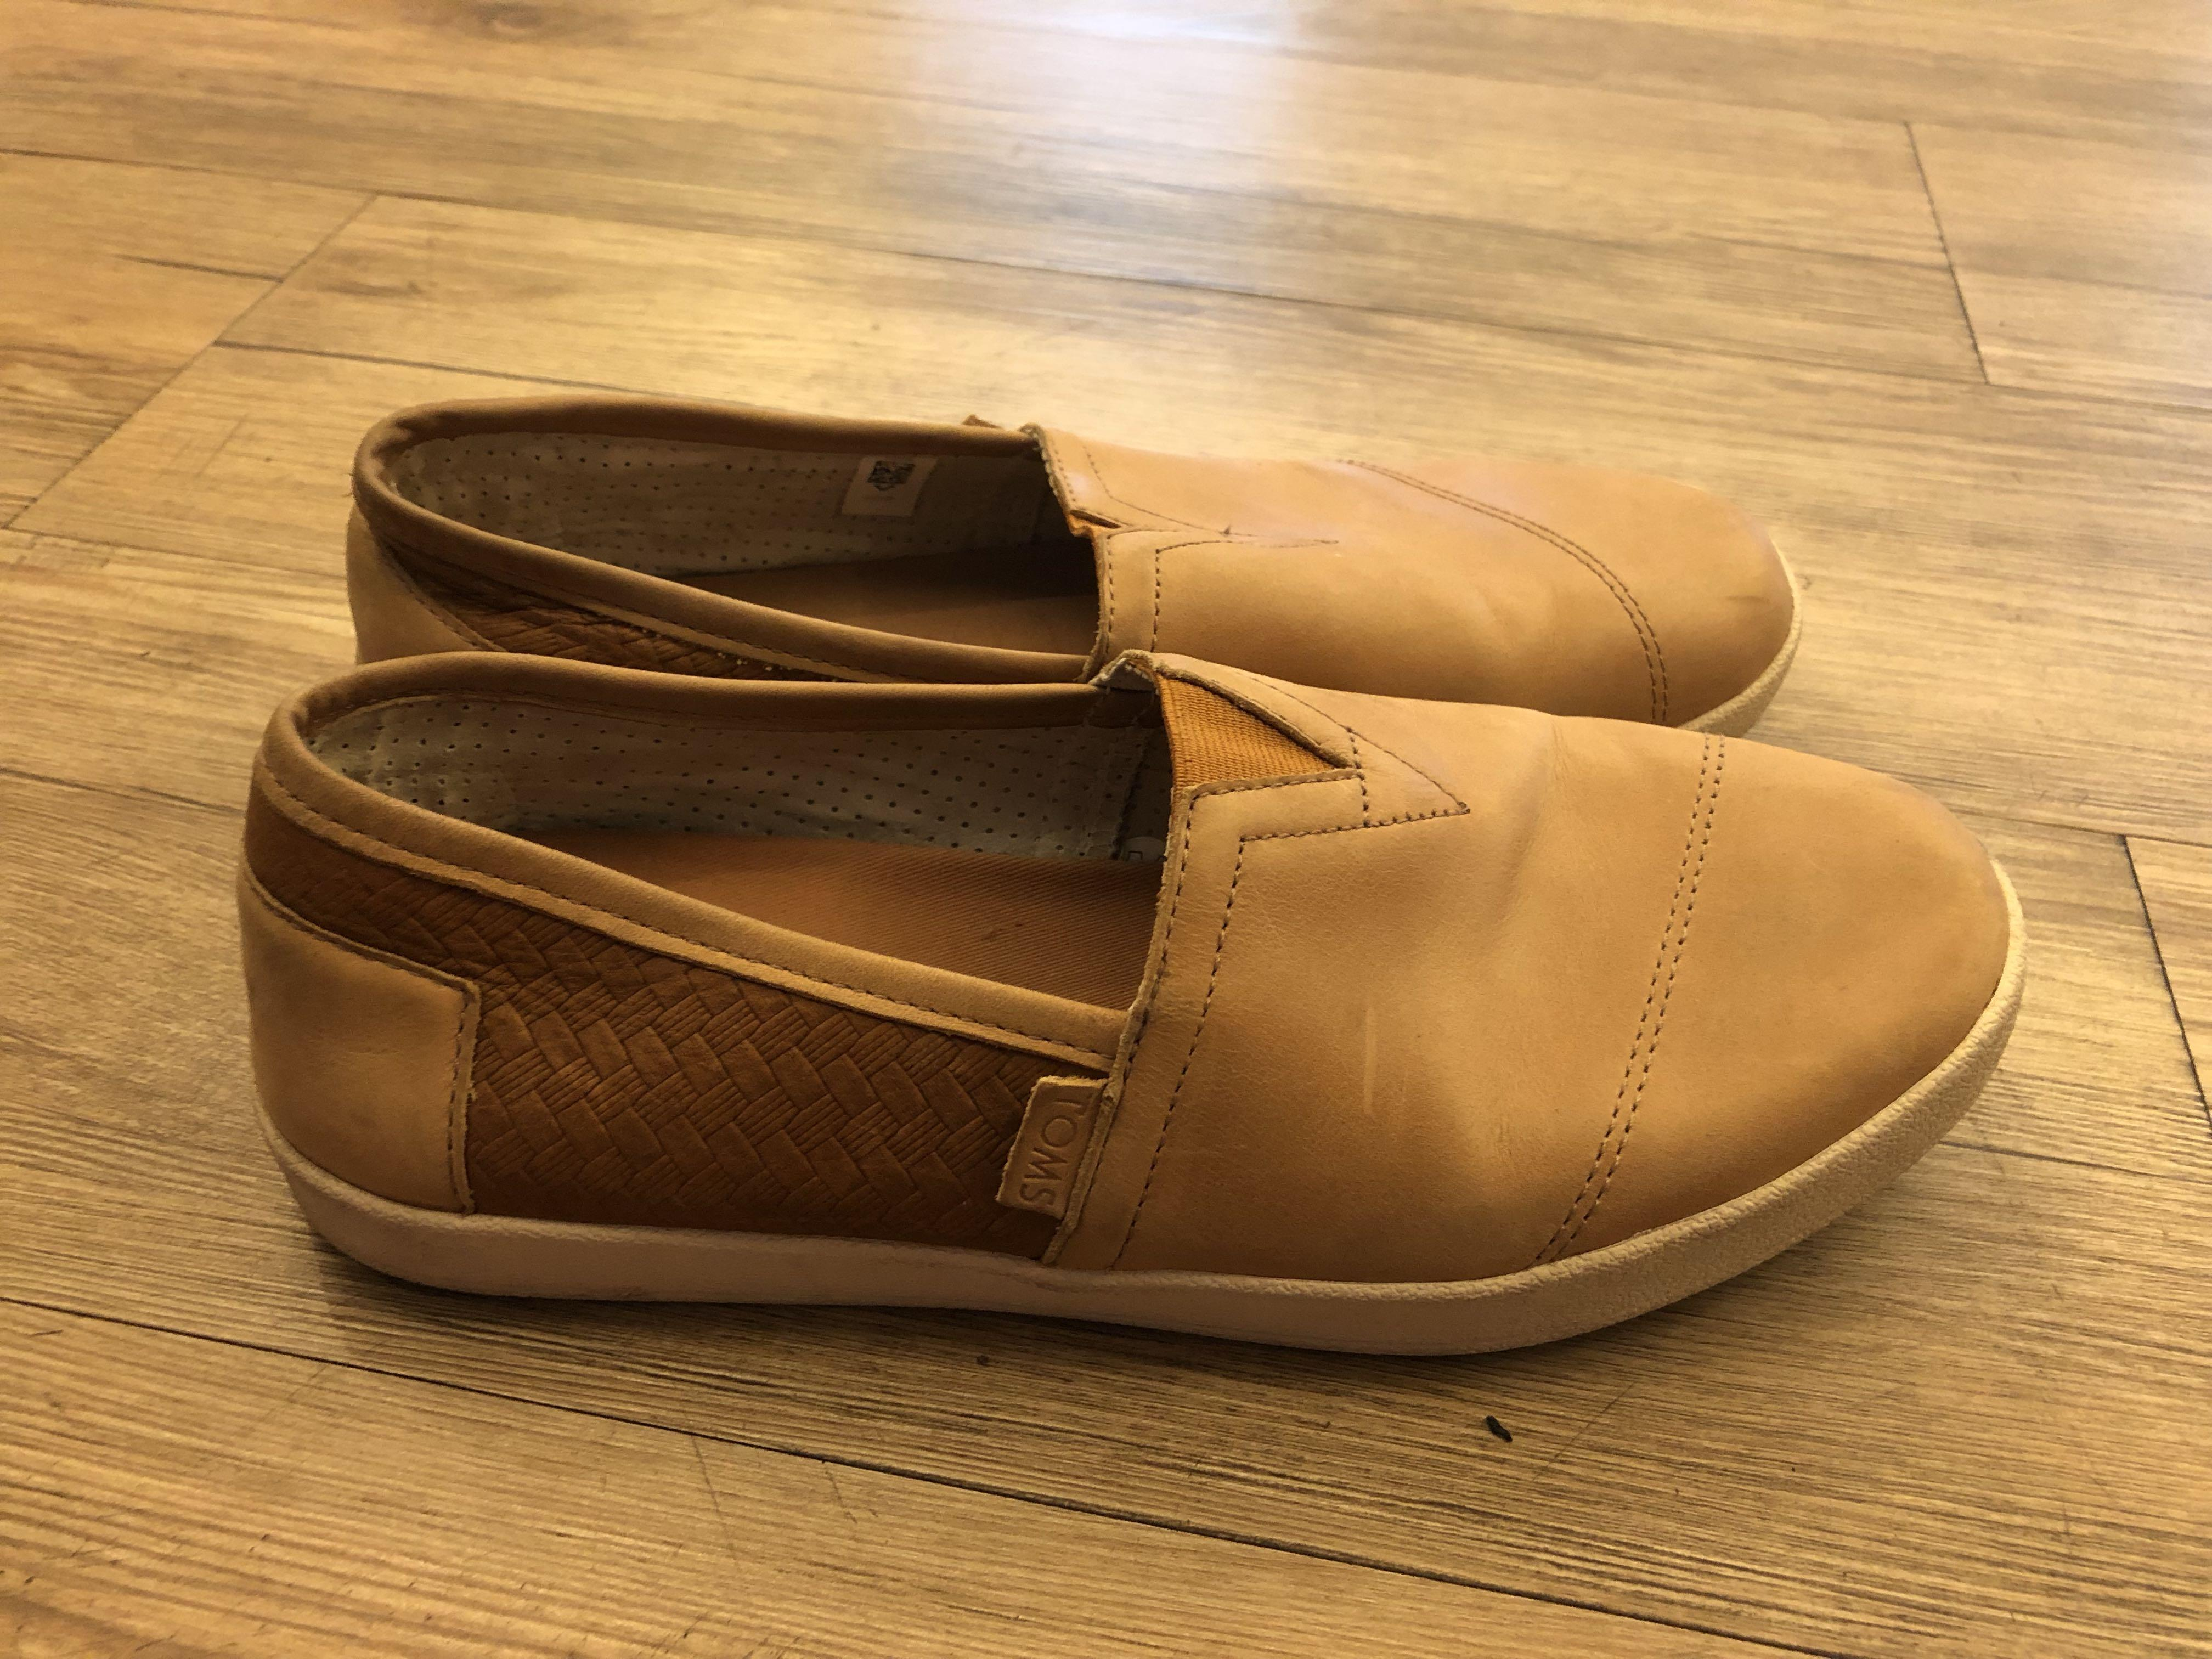 low priced 7be35 f0fb8 TOMS - (42) Leather slip on/ Tan, Men's Fashion, Men's ...